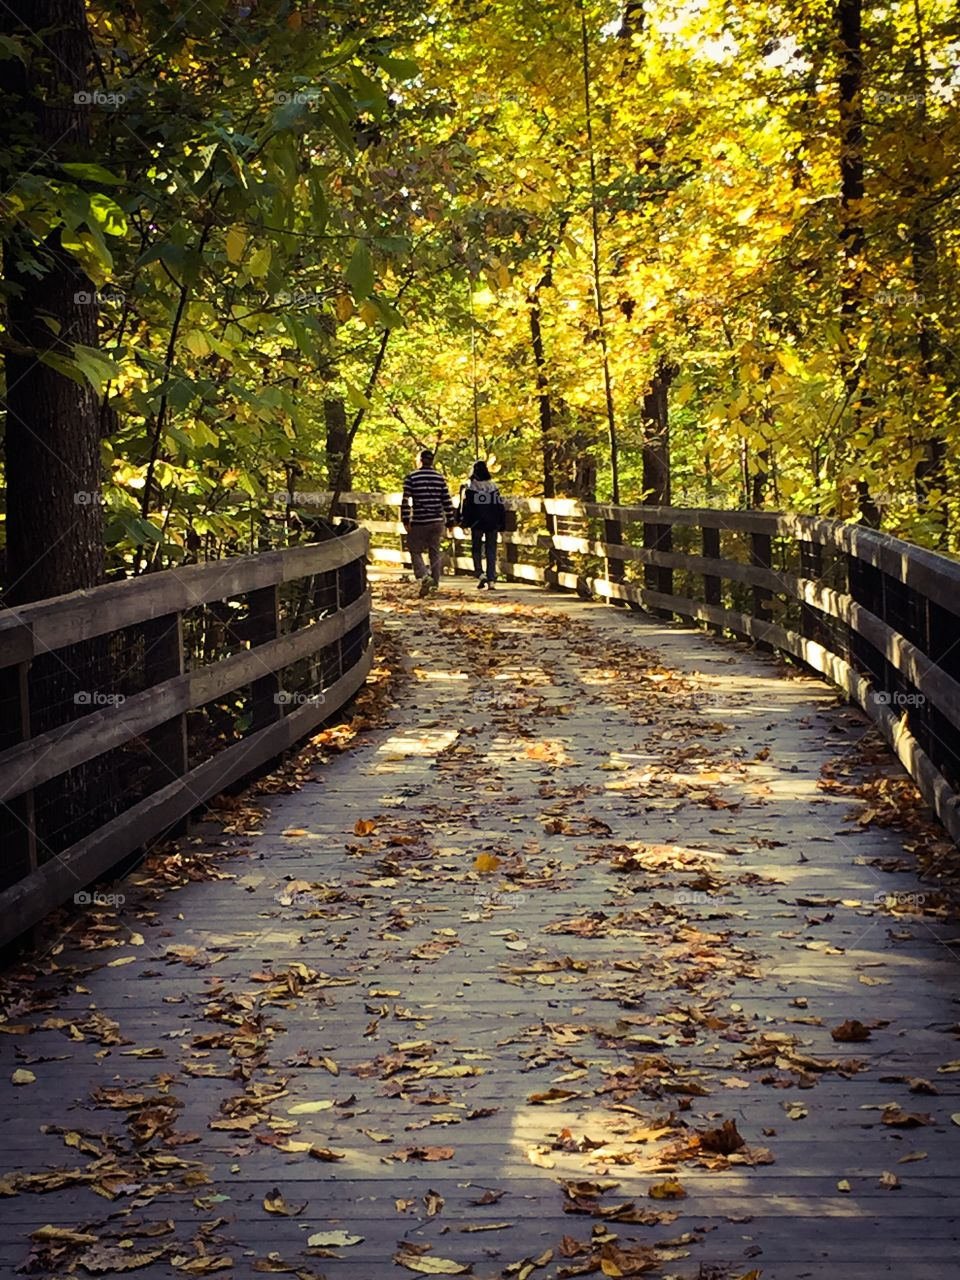 Autumn Stroll. Walking on a fall day, under a canopy of colorful trees with leaves scattered underfoot